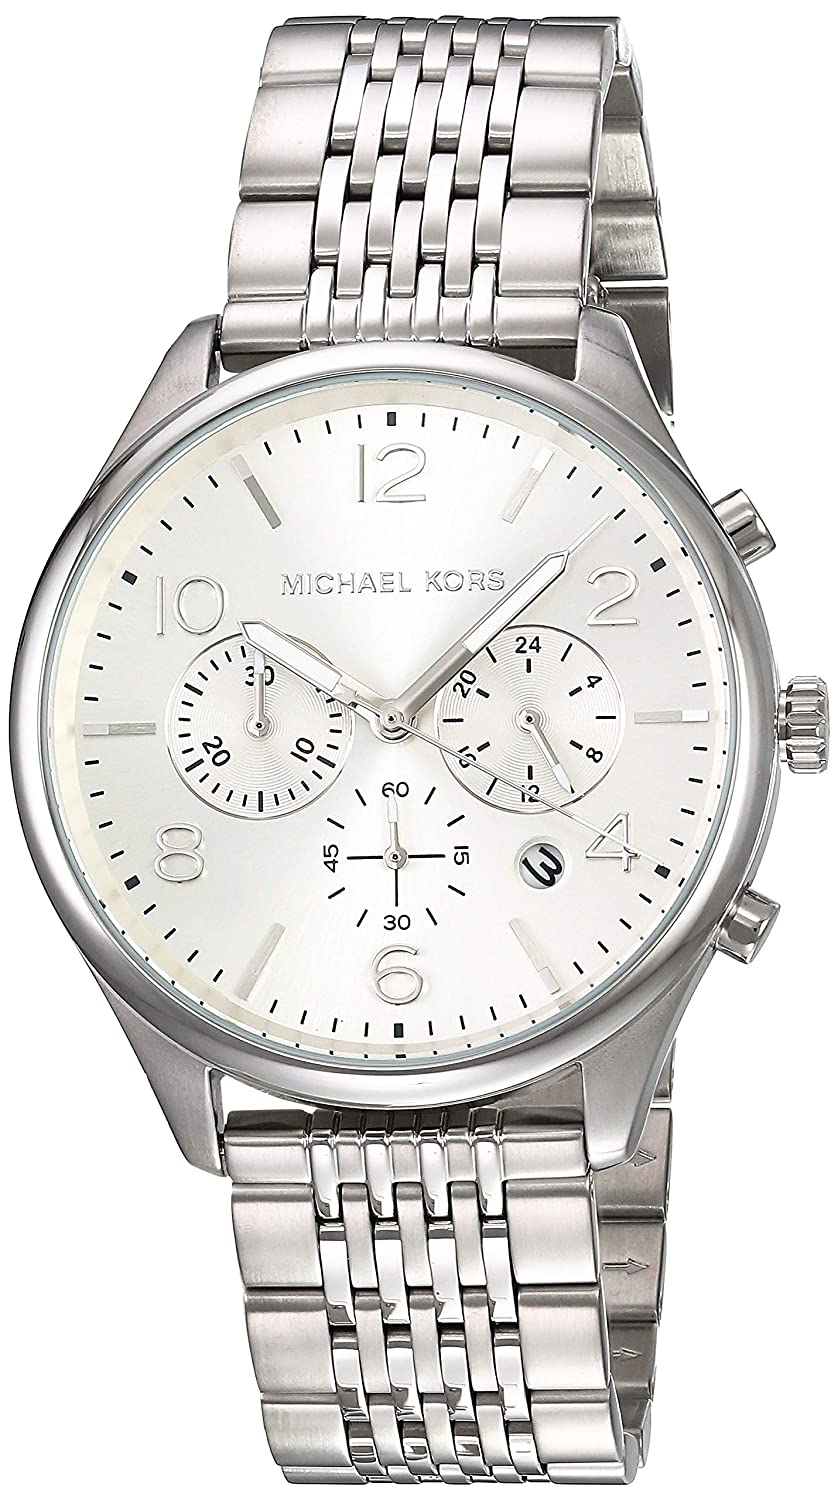 Amazon.com: Michael Kors Mens Merrick Watch, 42mm, Silver, One Size: Michael Kors: Watches